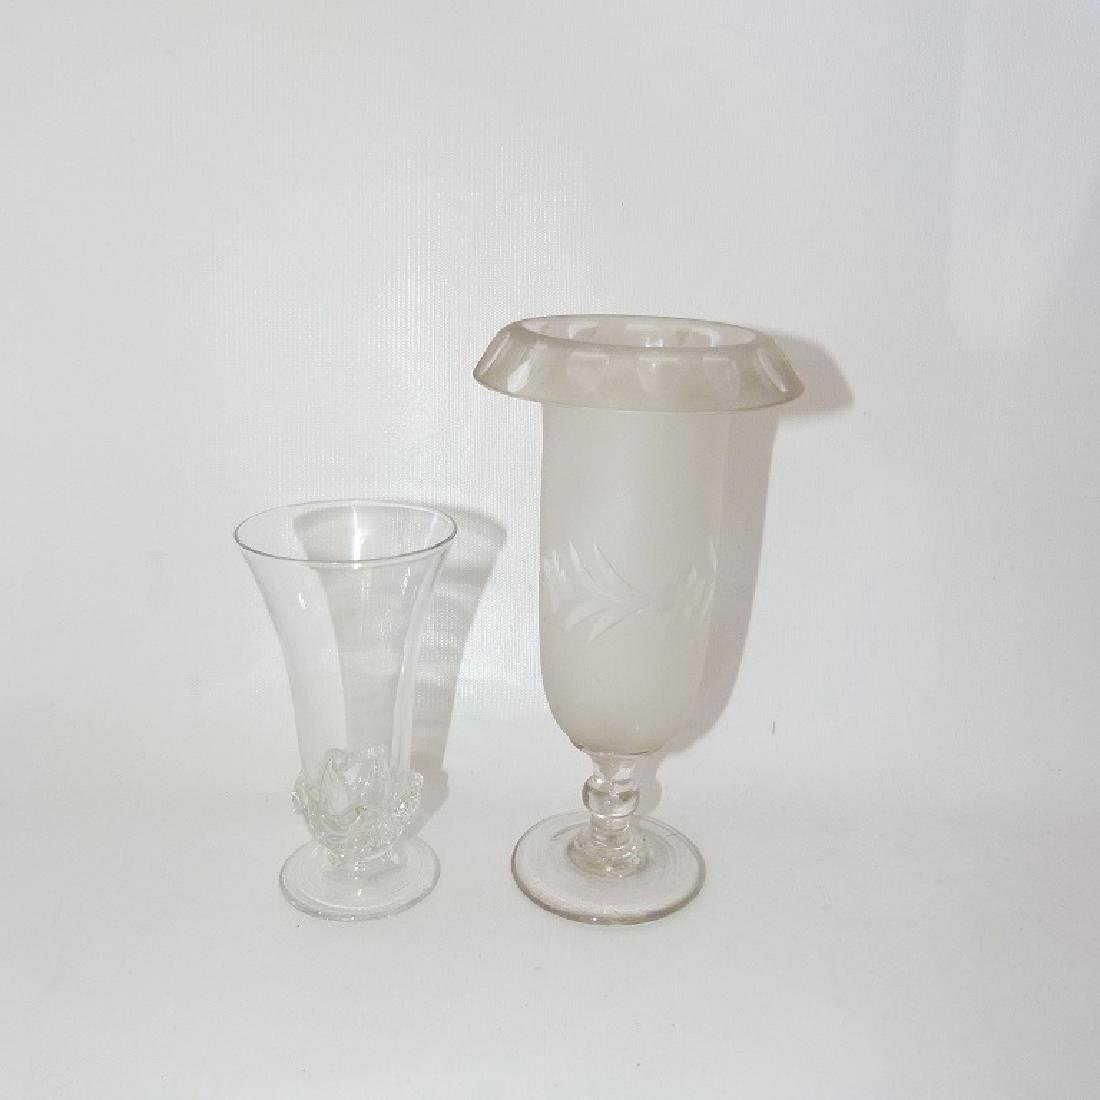 LOT (2) TRUMPET GLASS VASES INCL. SIGNED DAUM FRANCE